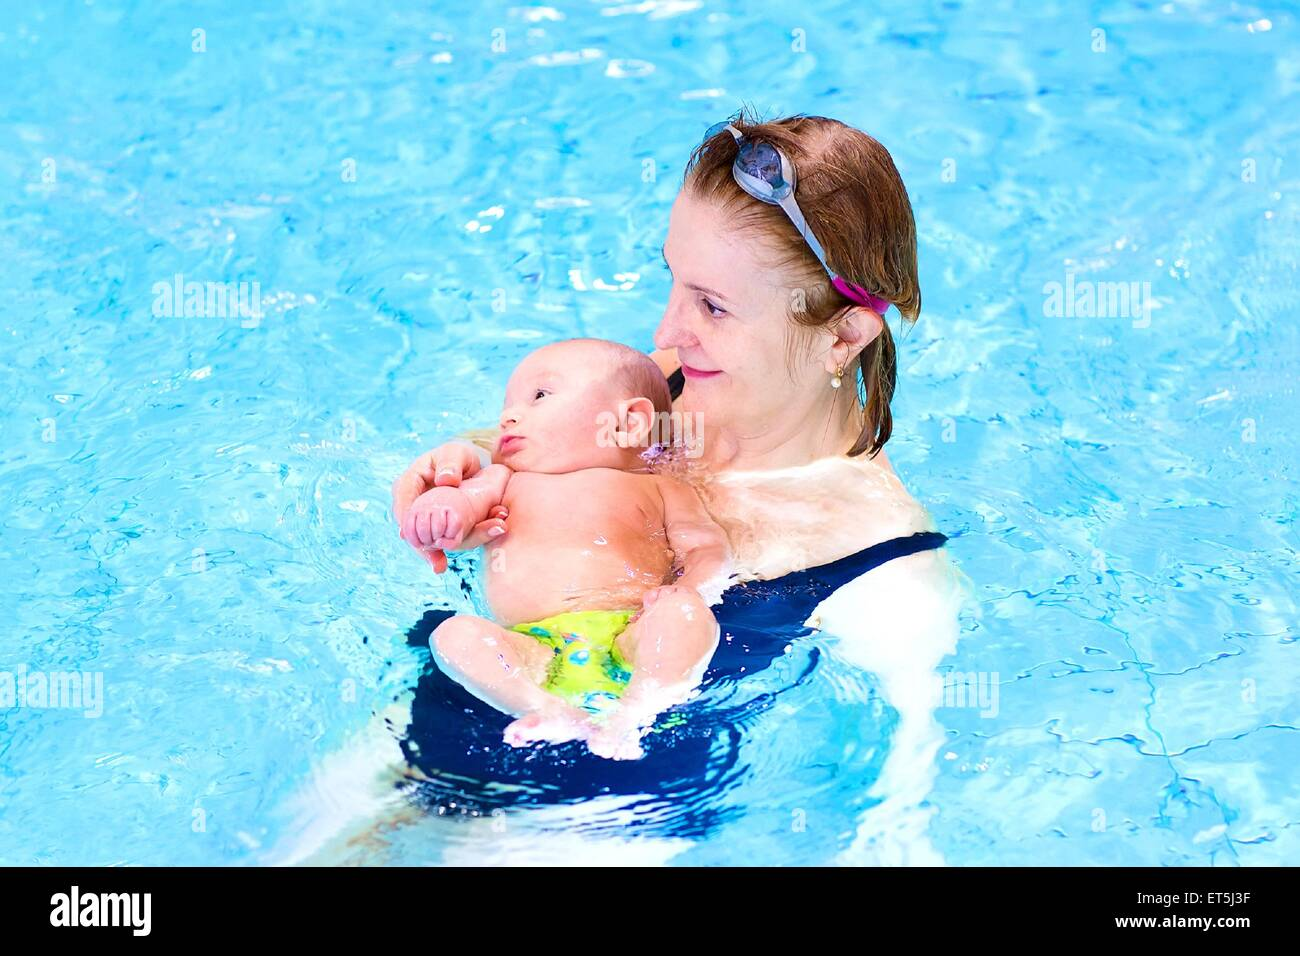 Attractive woman and a cute baby boy relaxing in a swimming pool - Stock Image